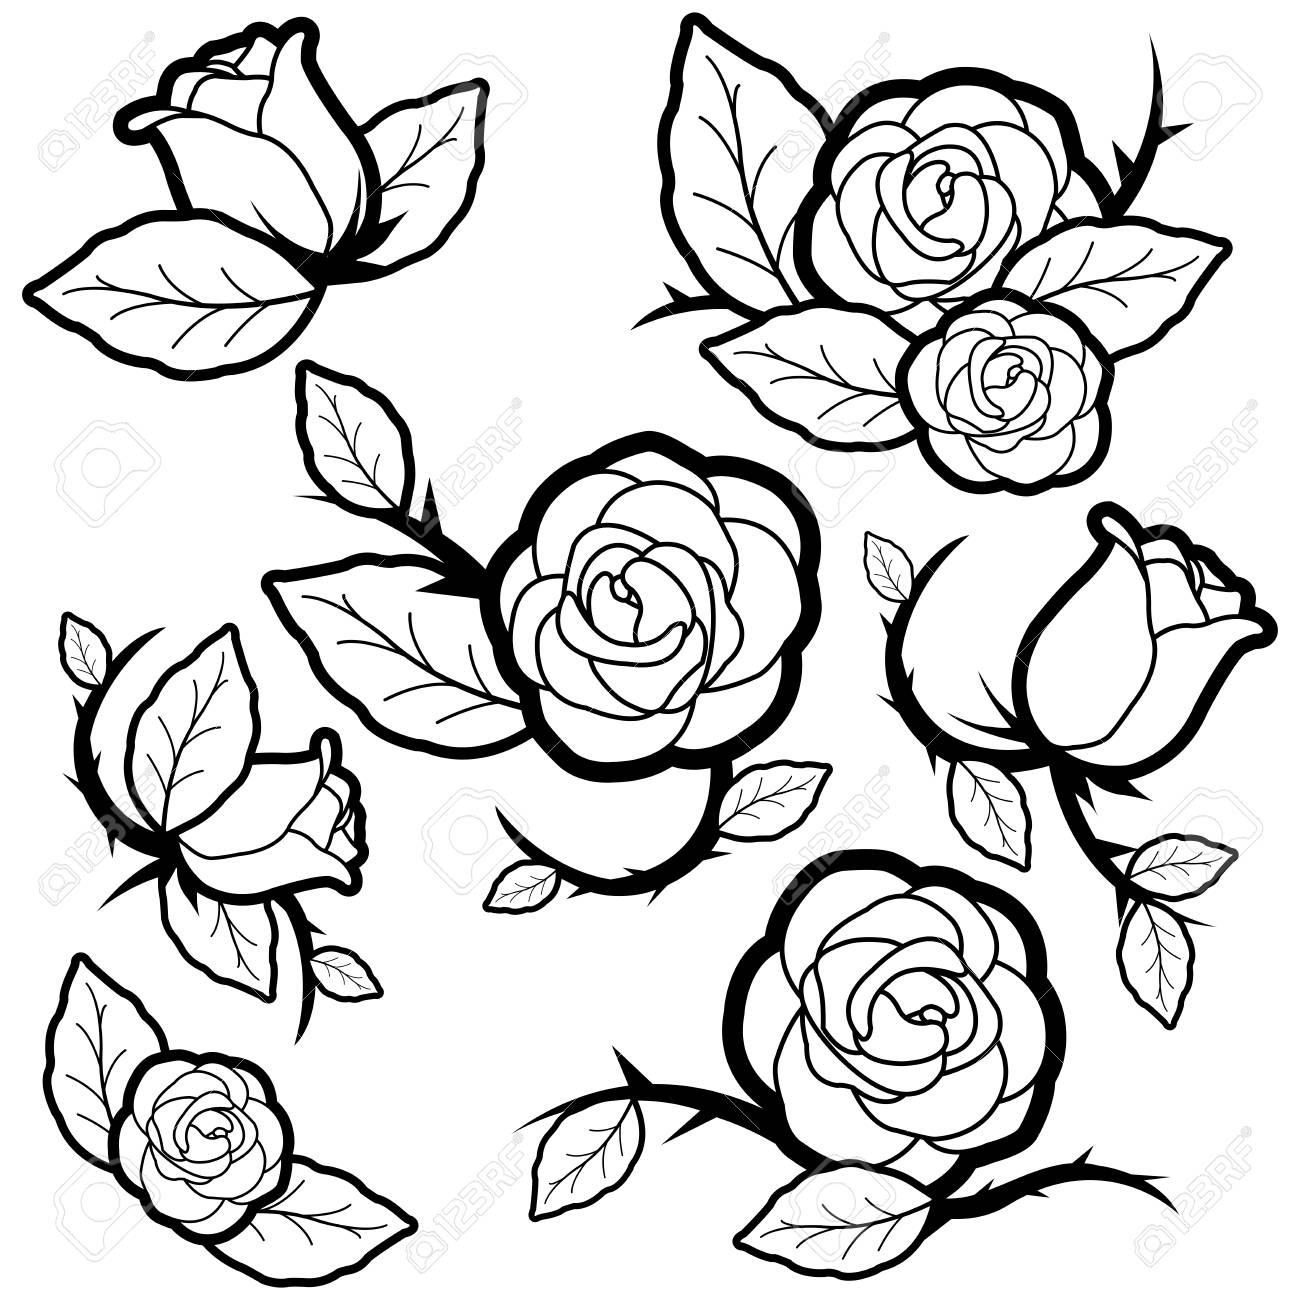 Vector Black And White Illustration Set Of Tattoo Style Roses